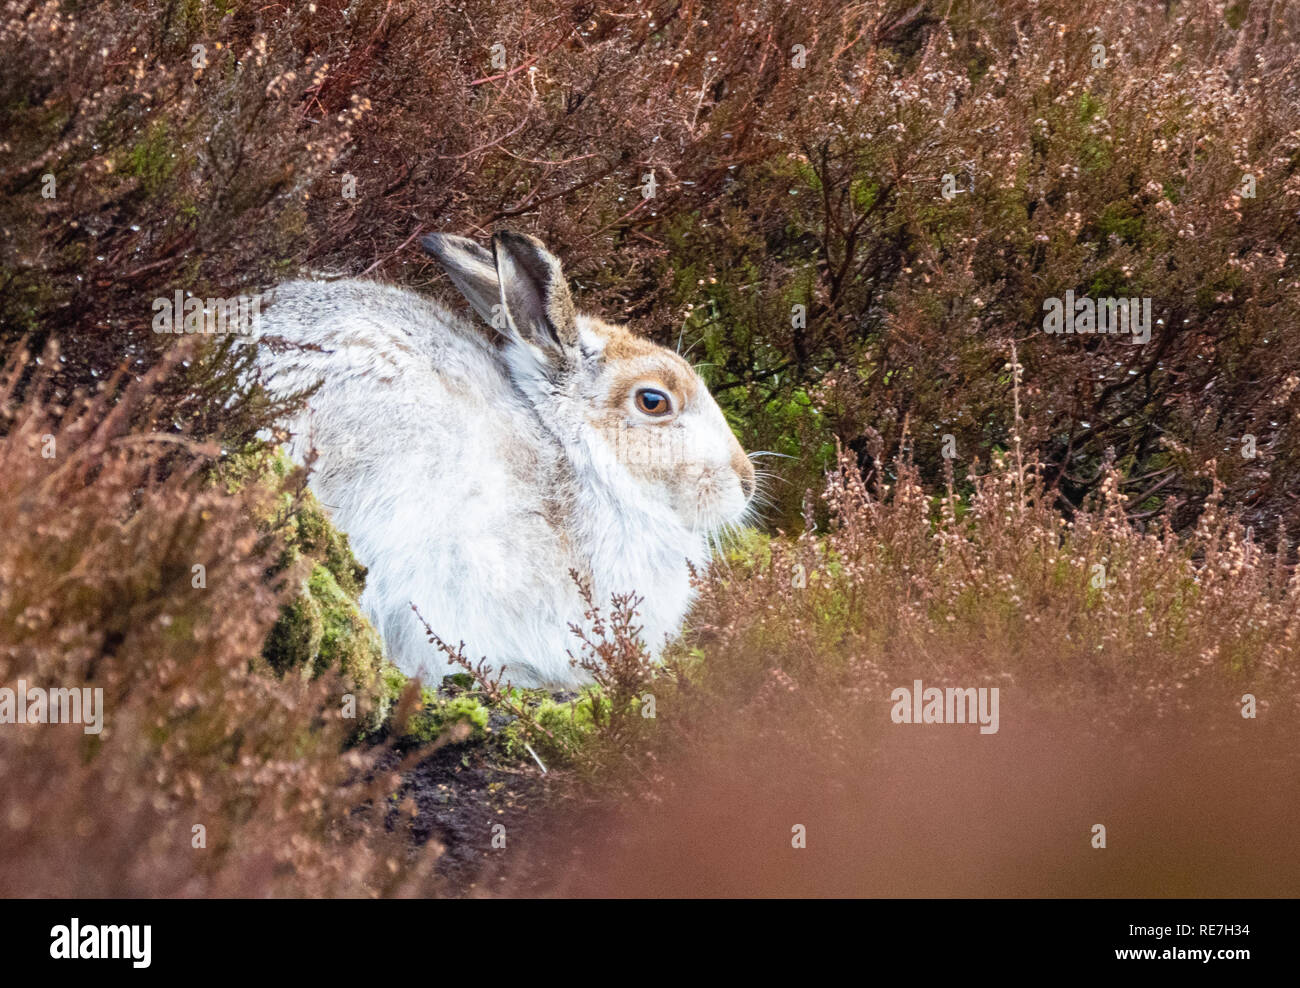 Mountain hare Lepus timidus in conspicuous white winter fur without snow cover hunkered down in its heather form in the Derbyshire Dark Peak UK - Stock Image